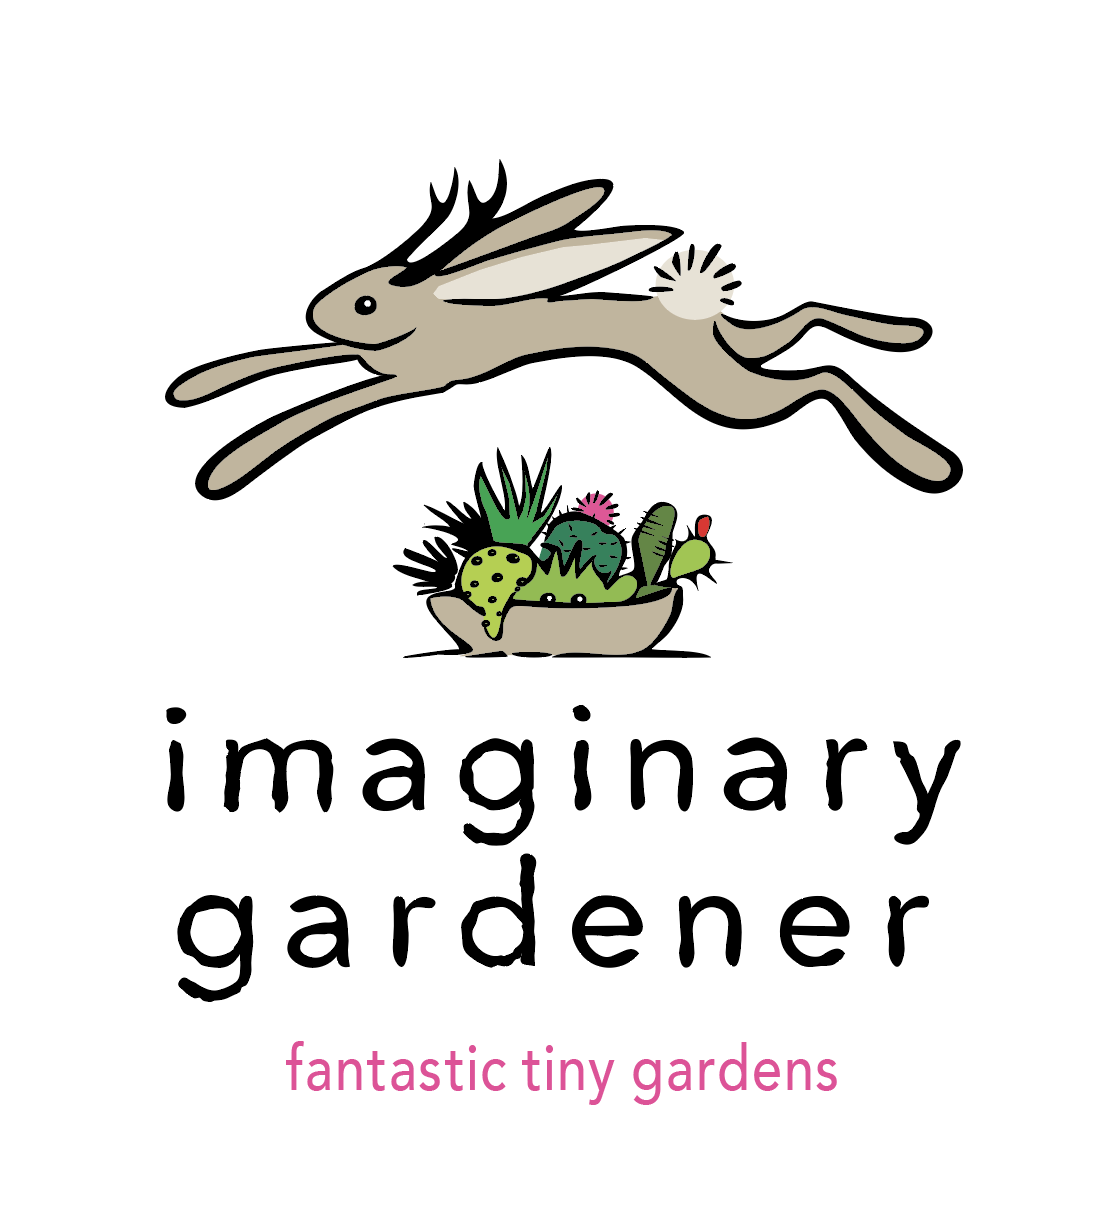 imaginary gardener